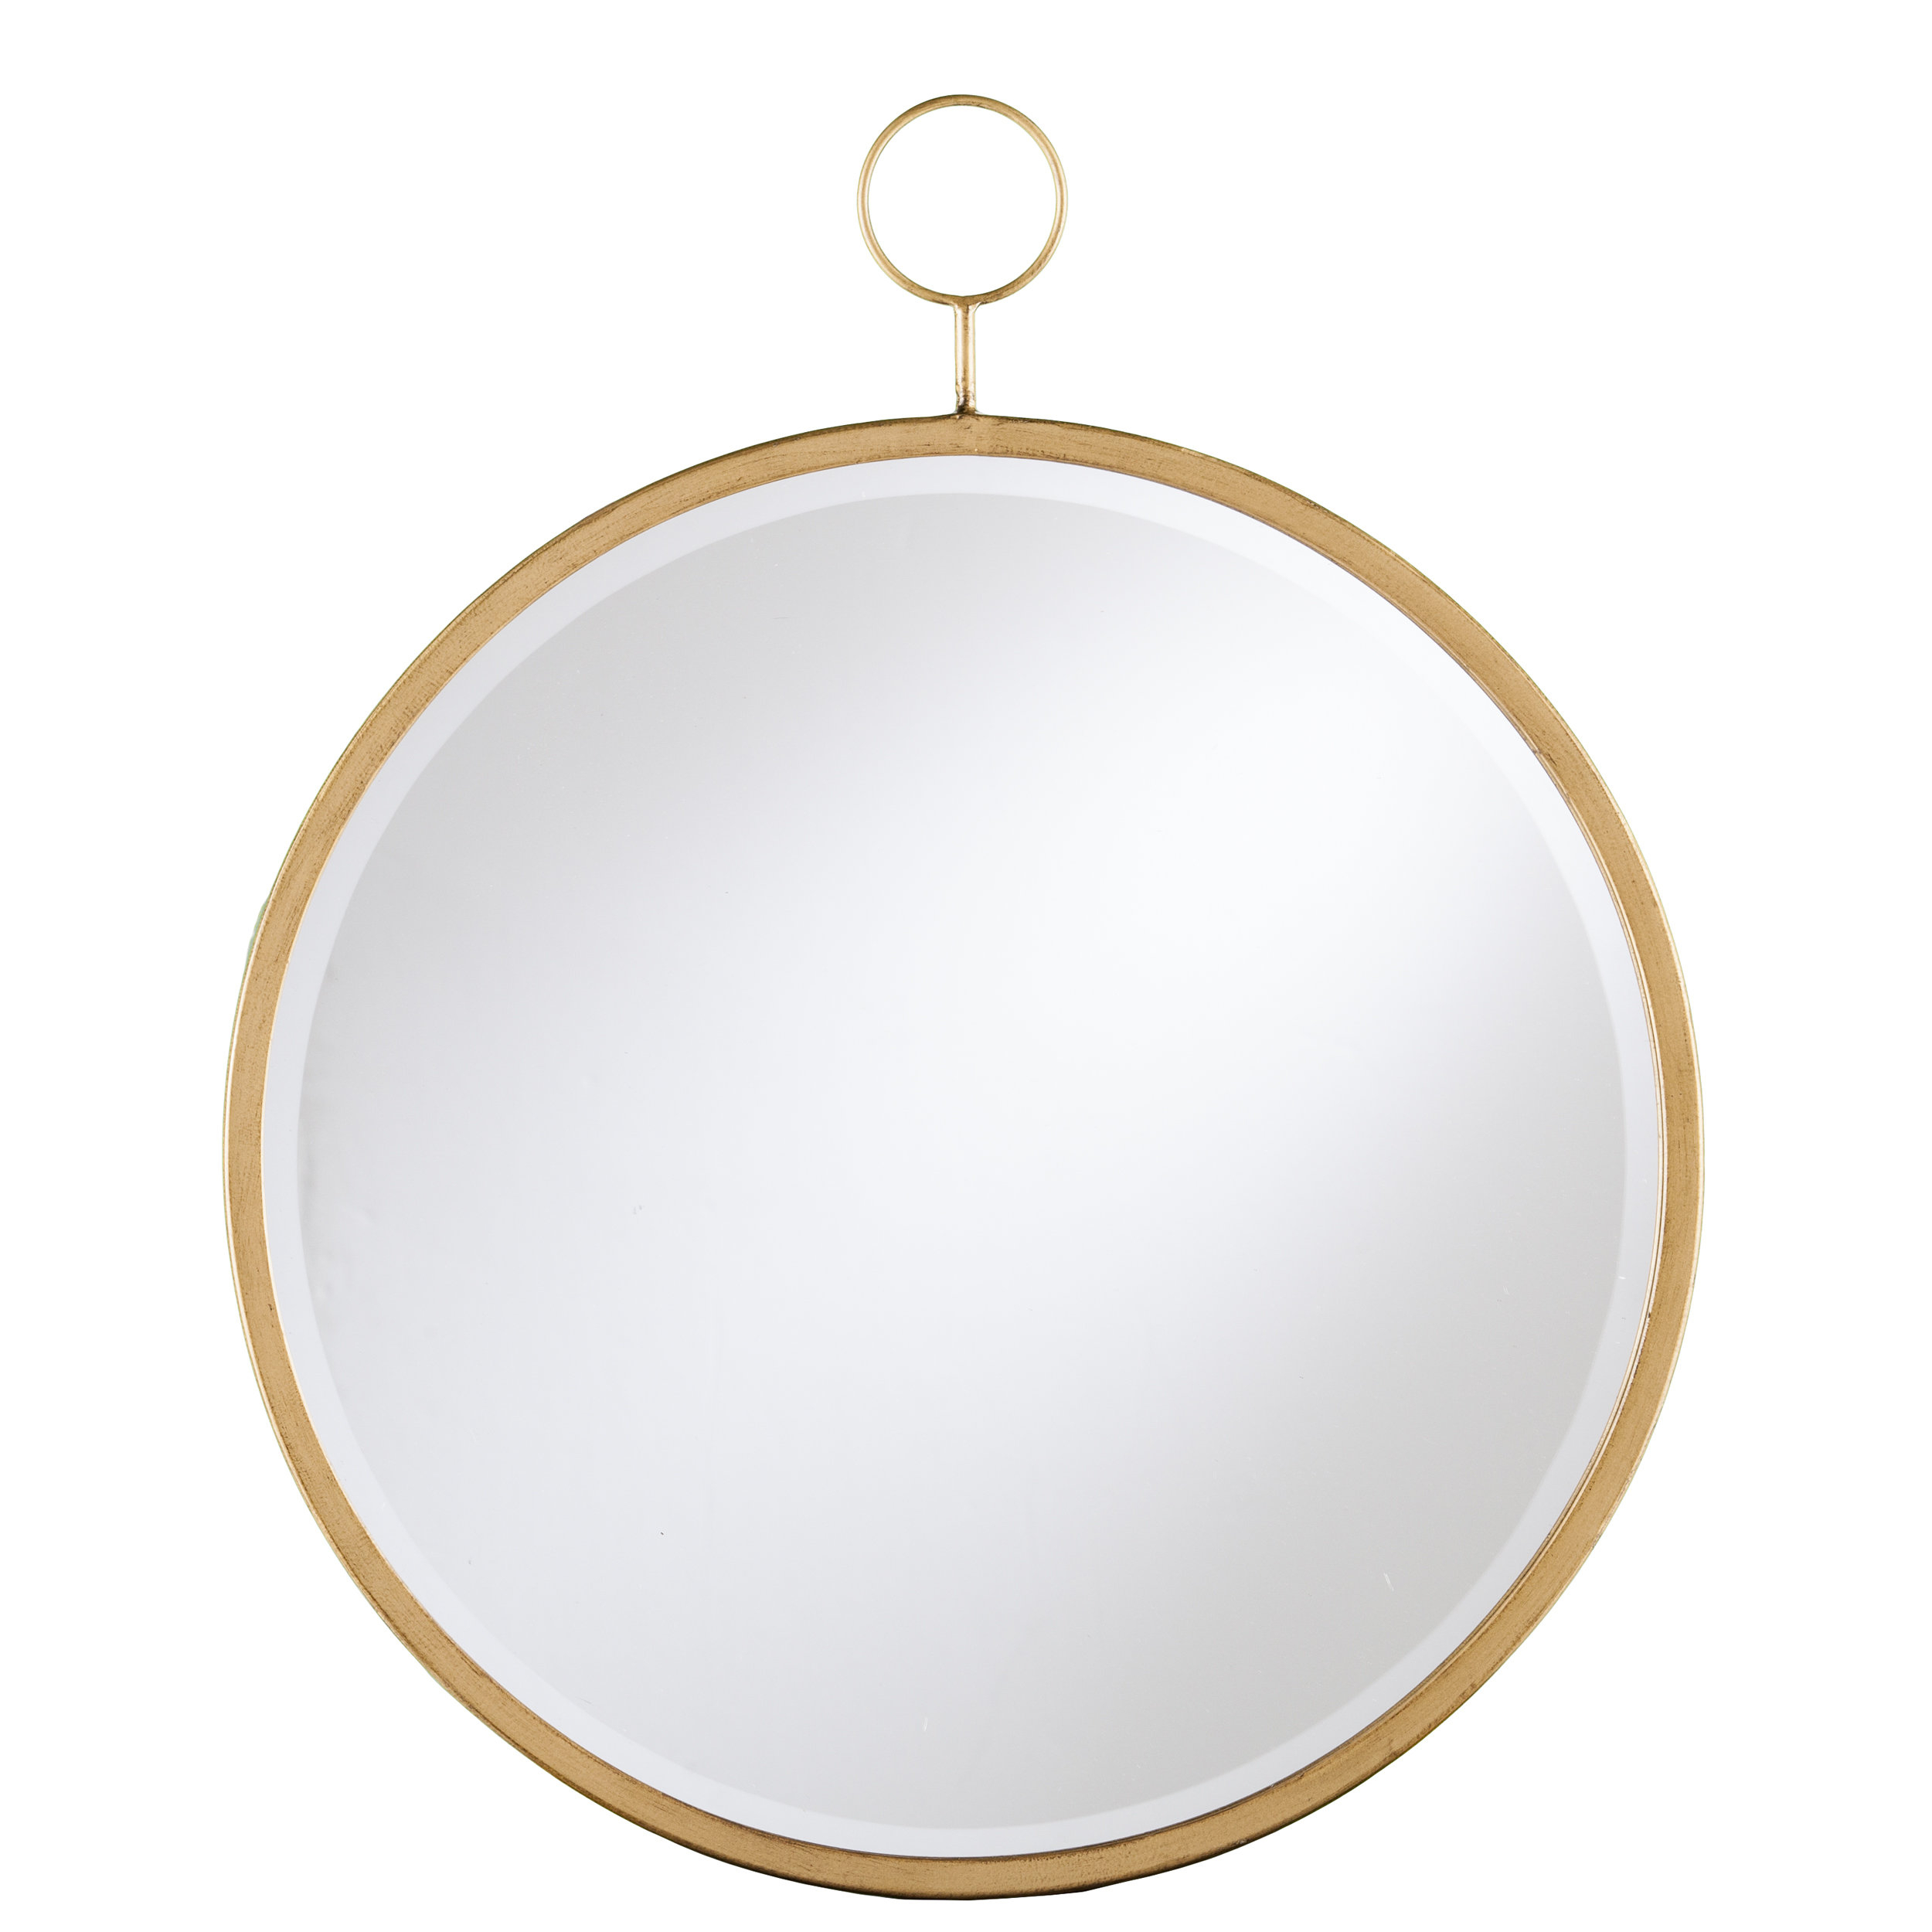 Kayden Accent Mirror | Wayfair Regarding Kayden Accent Mirrors (Photo 6 of 30)